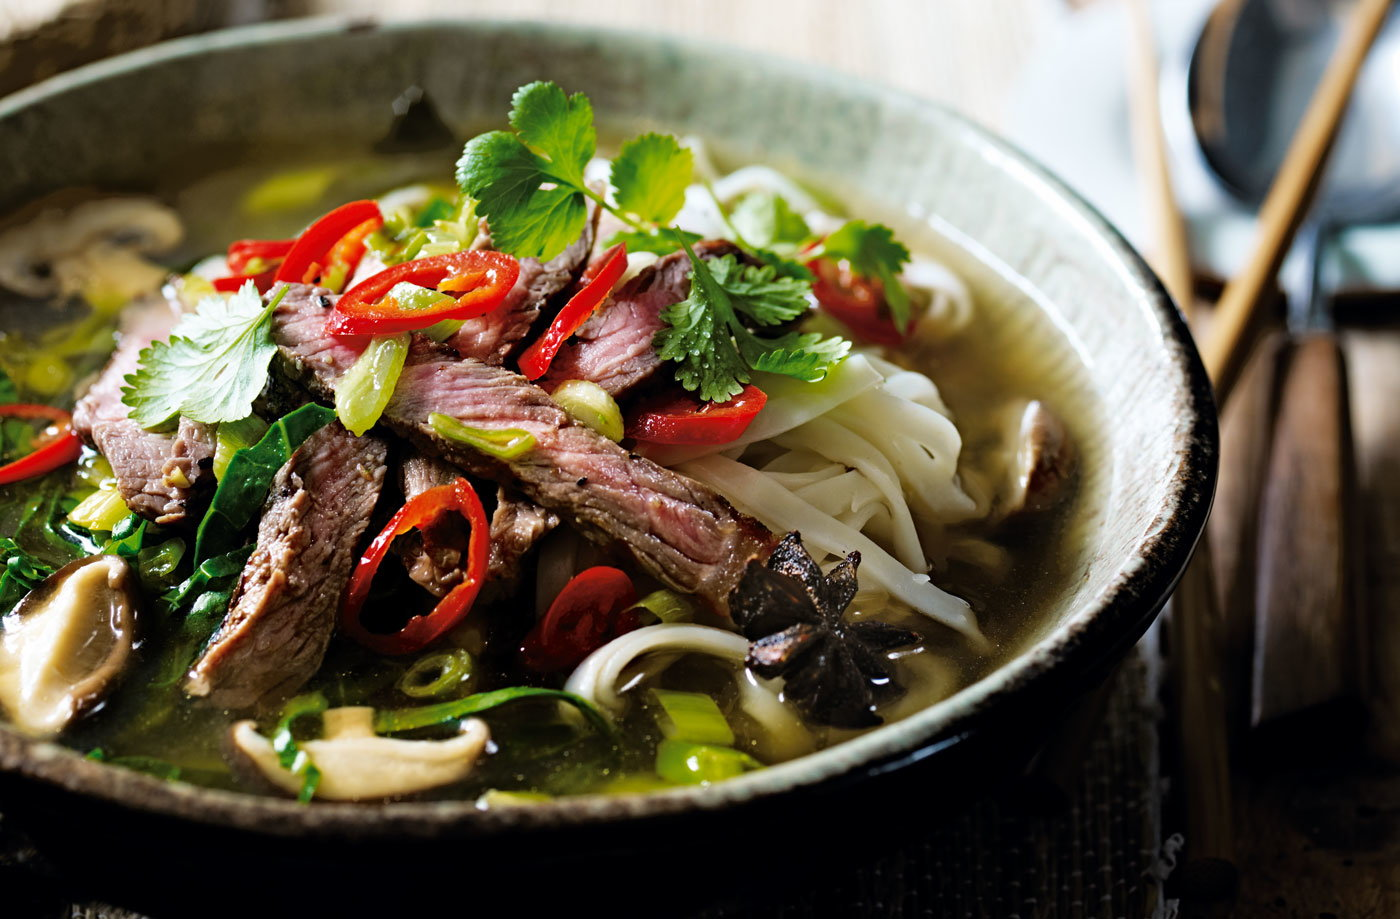 soup noodle ramen recipes beef and popular Ramen are their noodles delicate increasingly texture, for